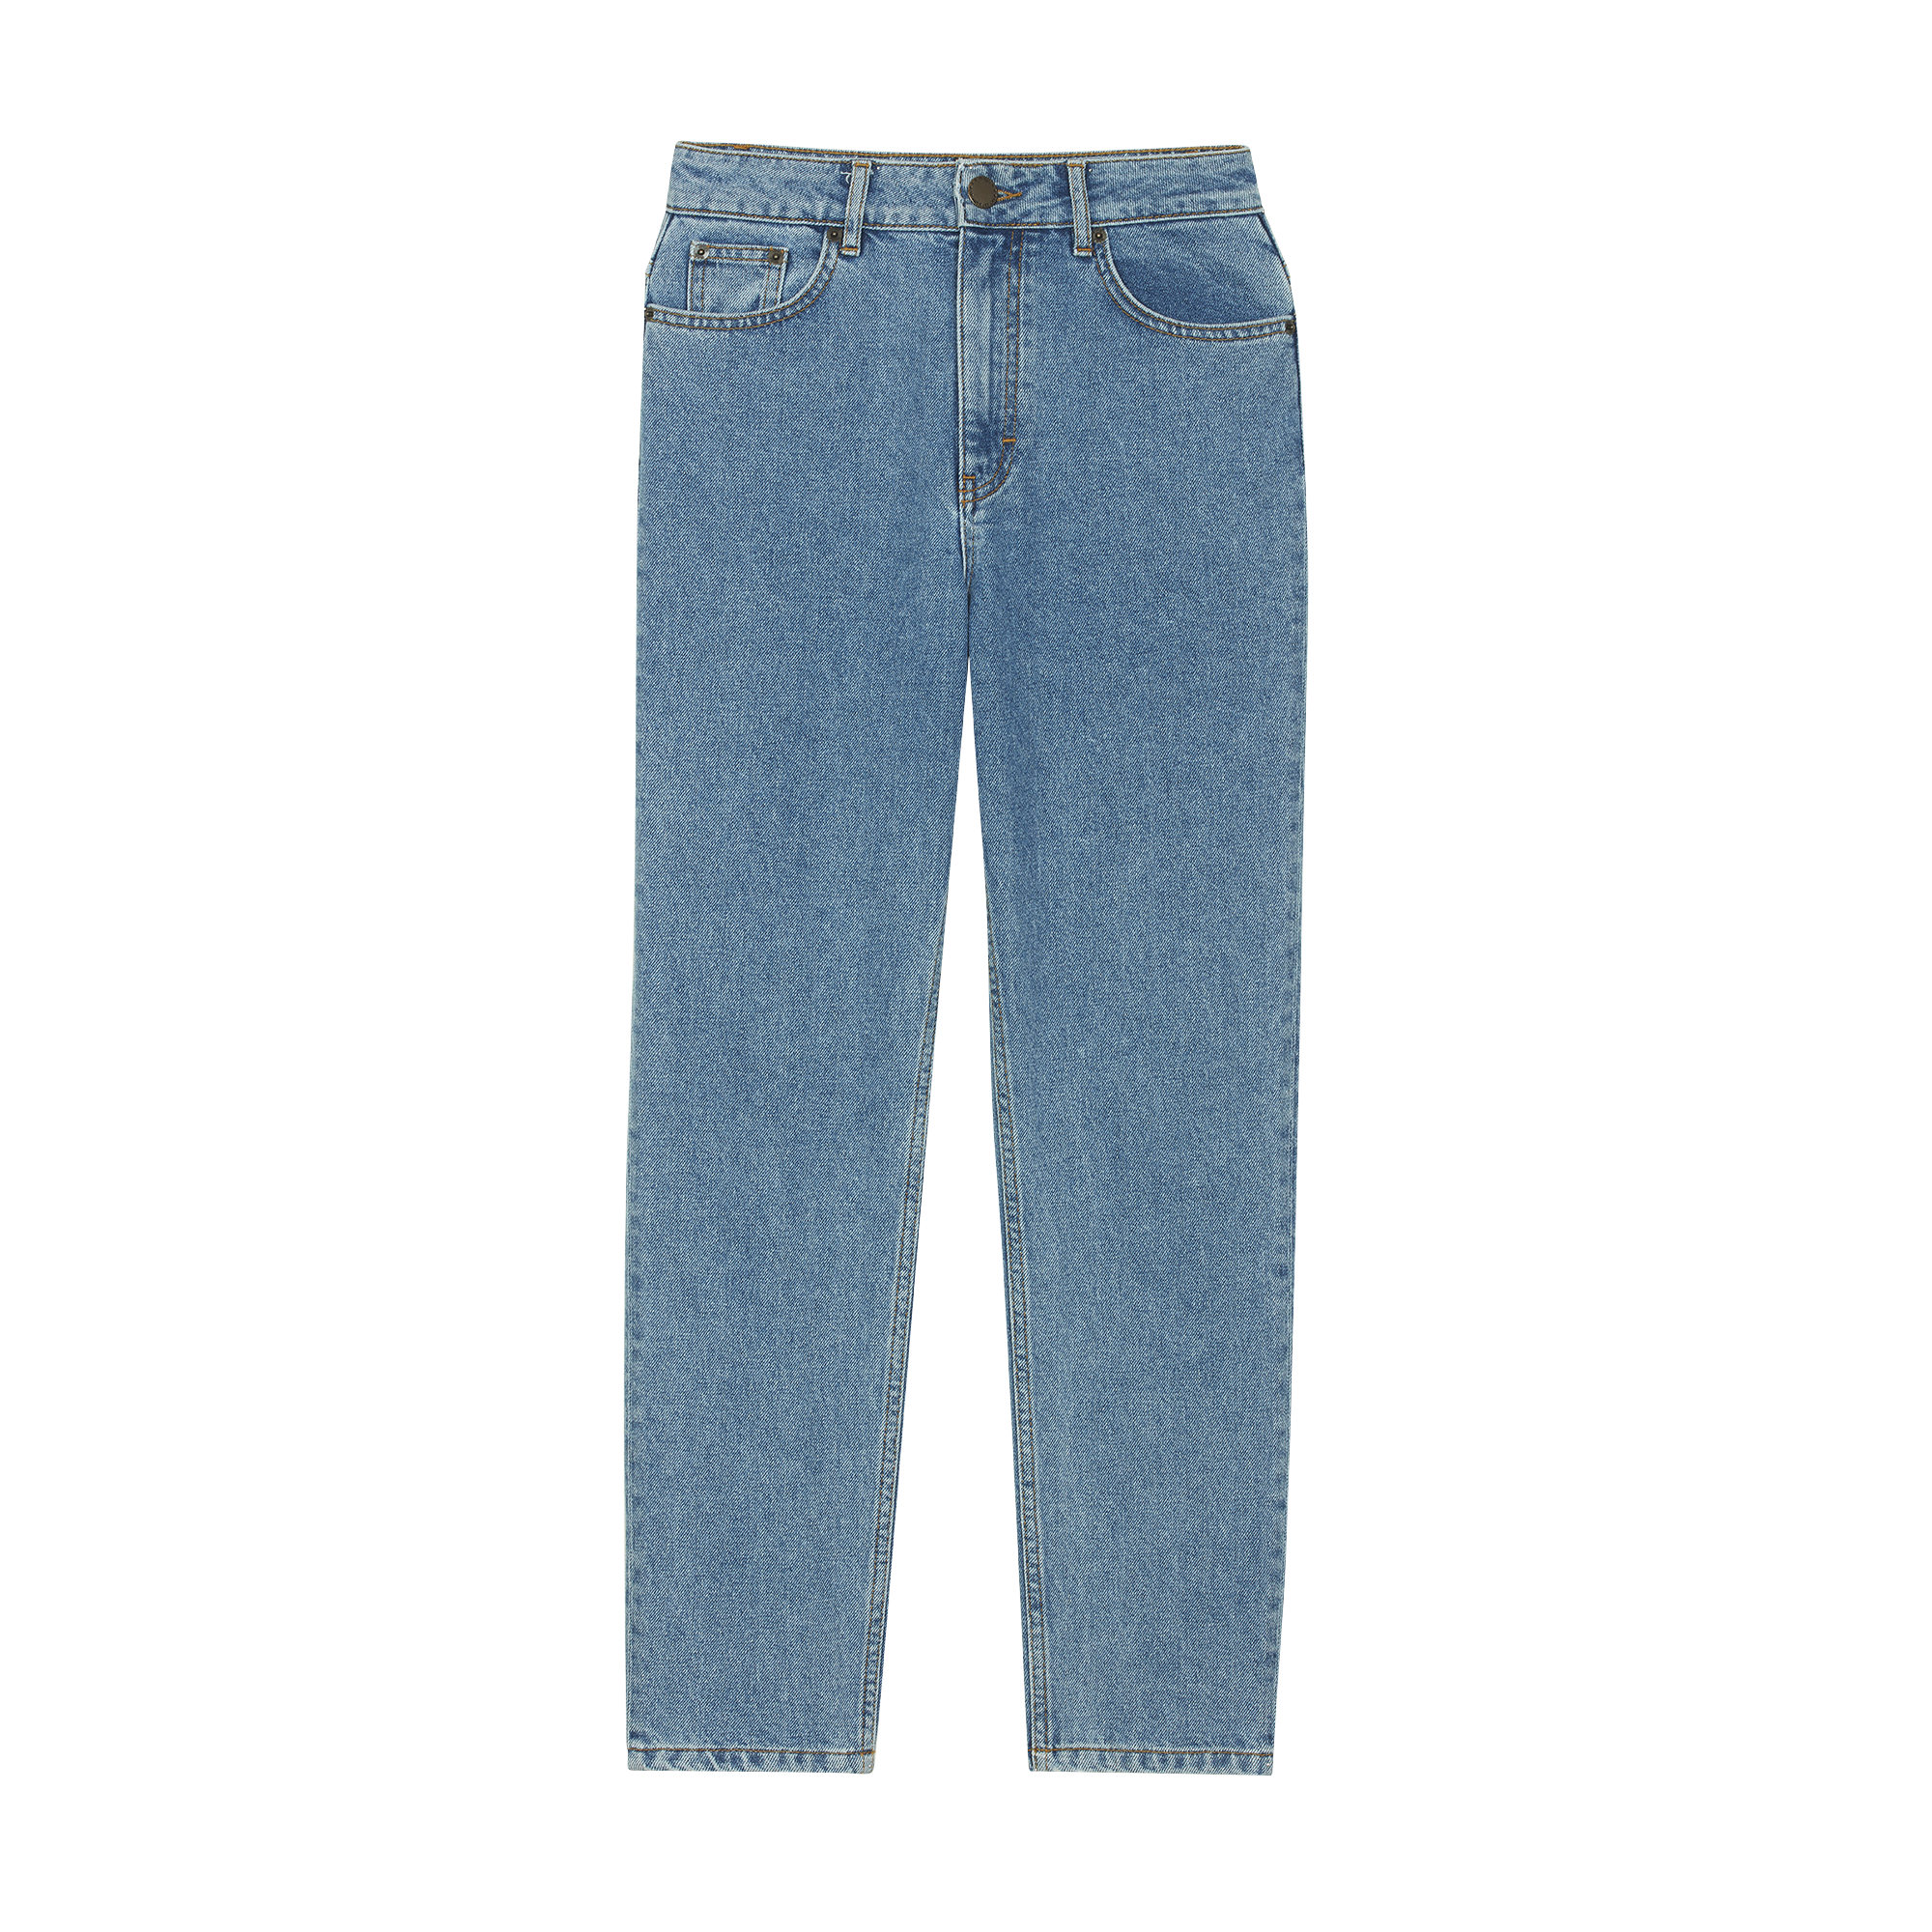 Wide jeans in distressed denim - Jeans - MAJE